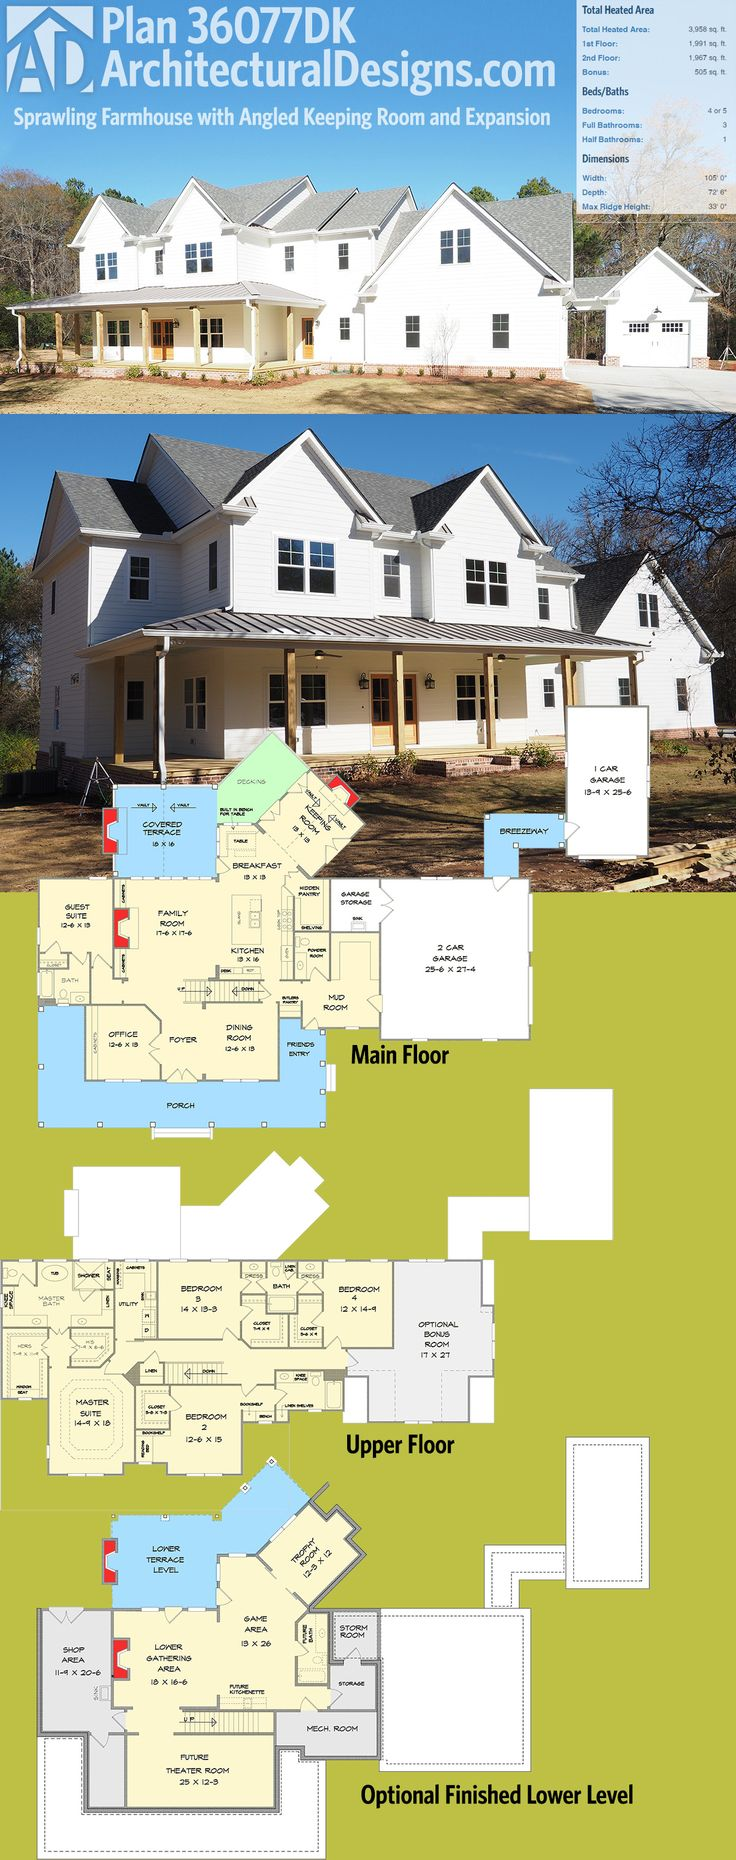 Best 25+ House Floor Plans Ideas On Pinterest | House Blueprints, Home  Floor Plans And Architectural Floor Plans Part 68